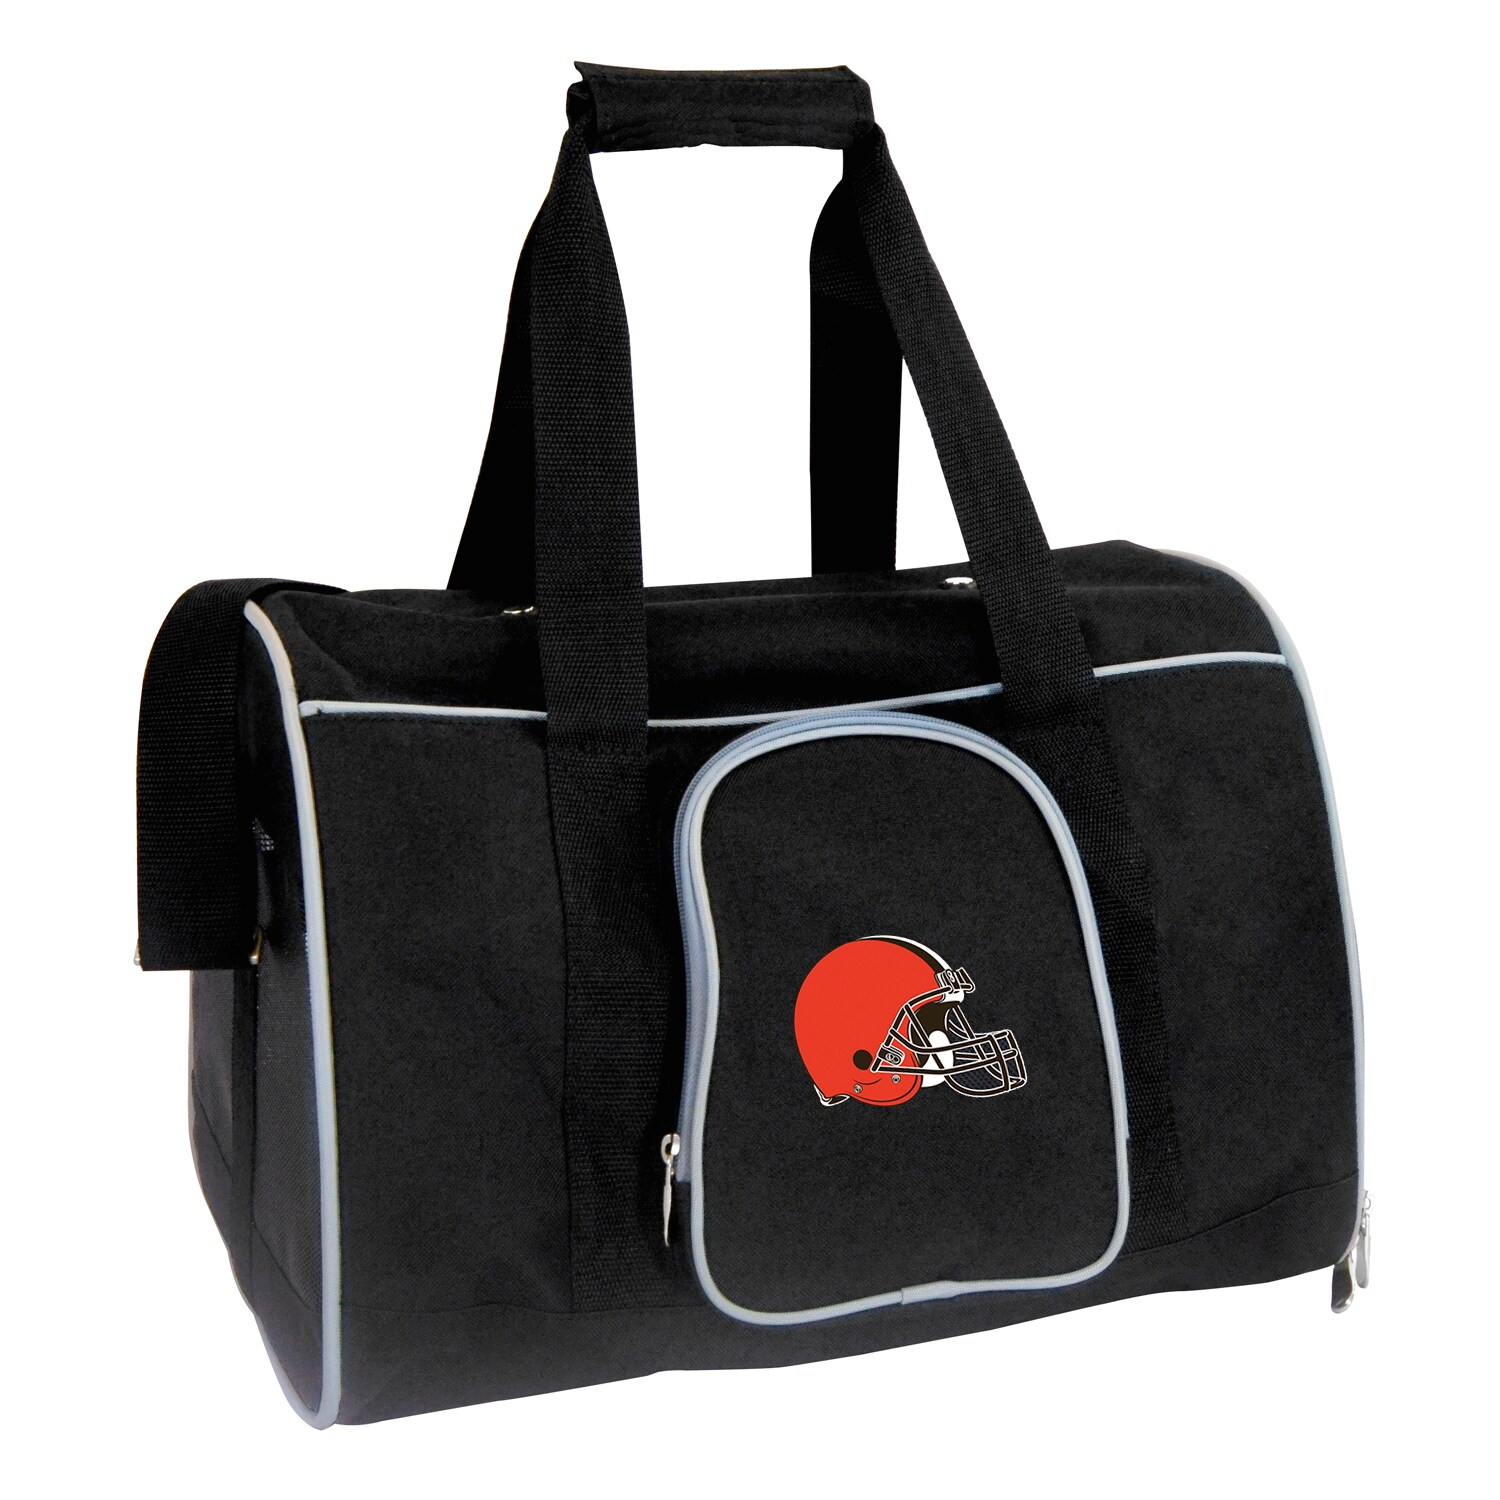 "Cleveland Browns Small 16"" Pet Carrier - Black"